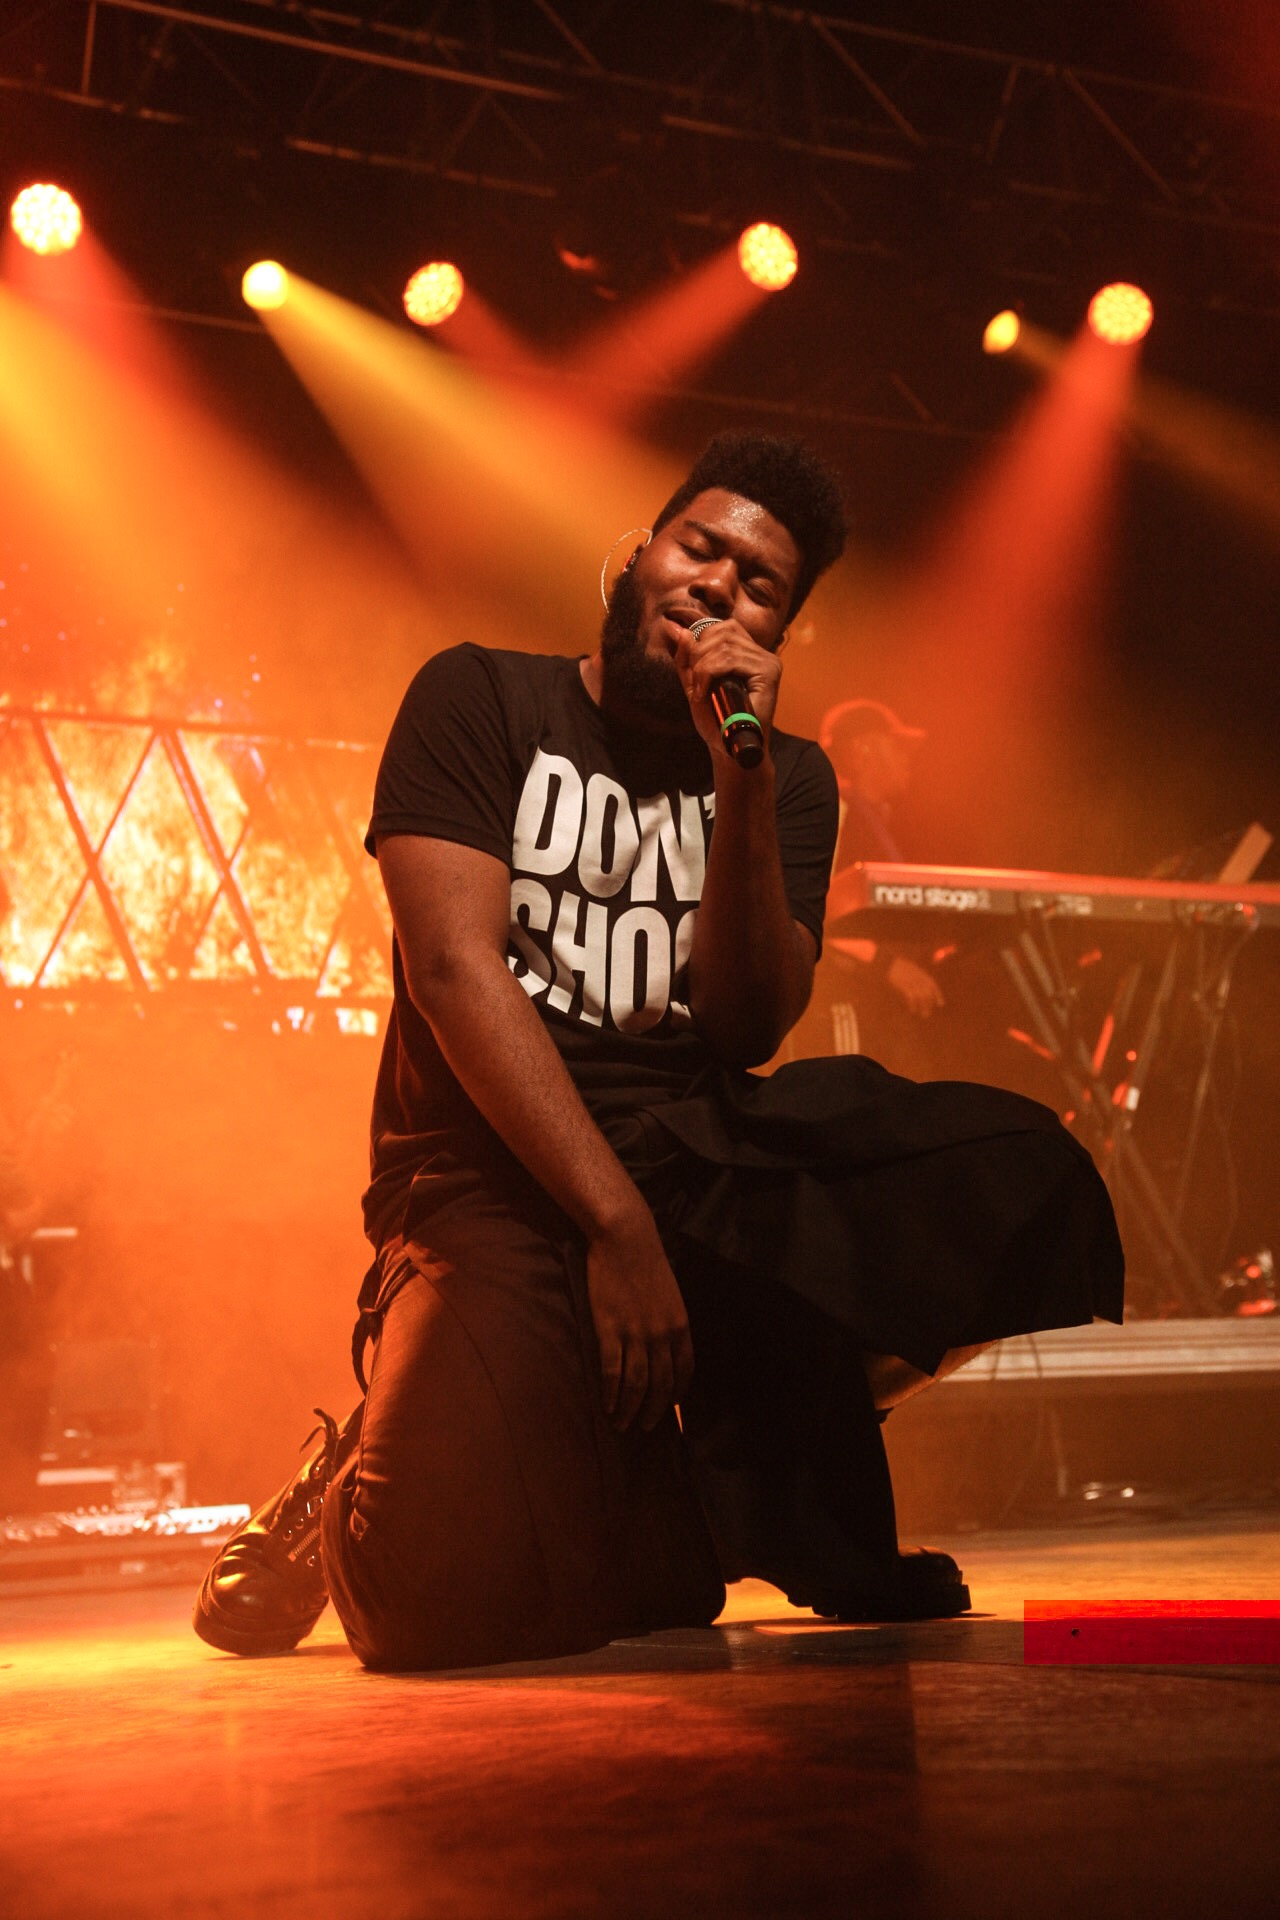 khalid in phoenix, arizona - 1